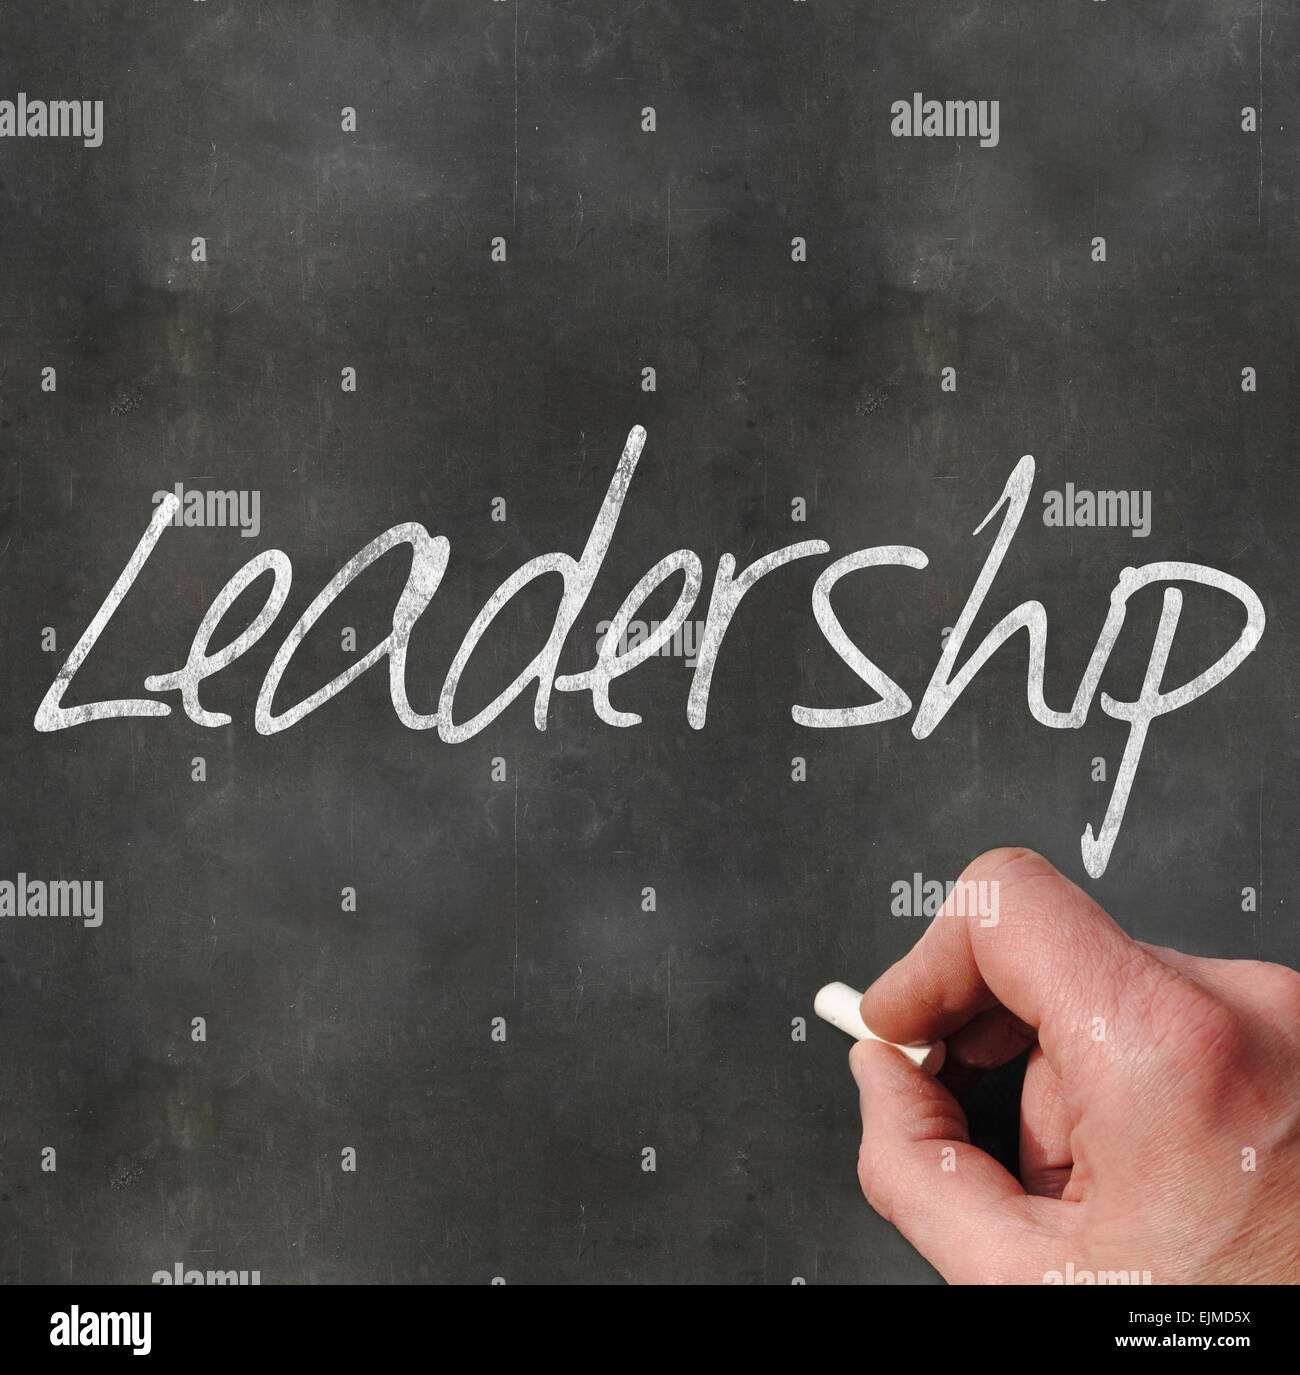 A Colourful 3d Rendered Concept Illustration showing Leadership written on a Blackboard - Stock Image